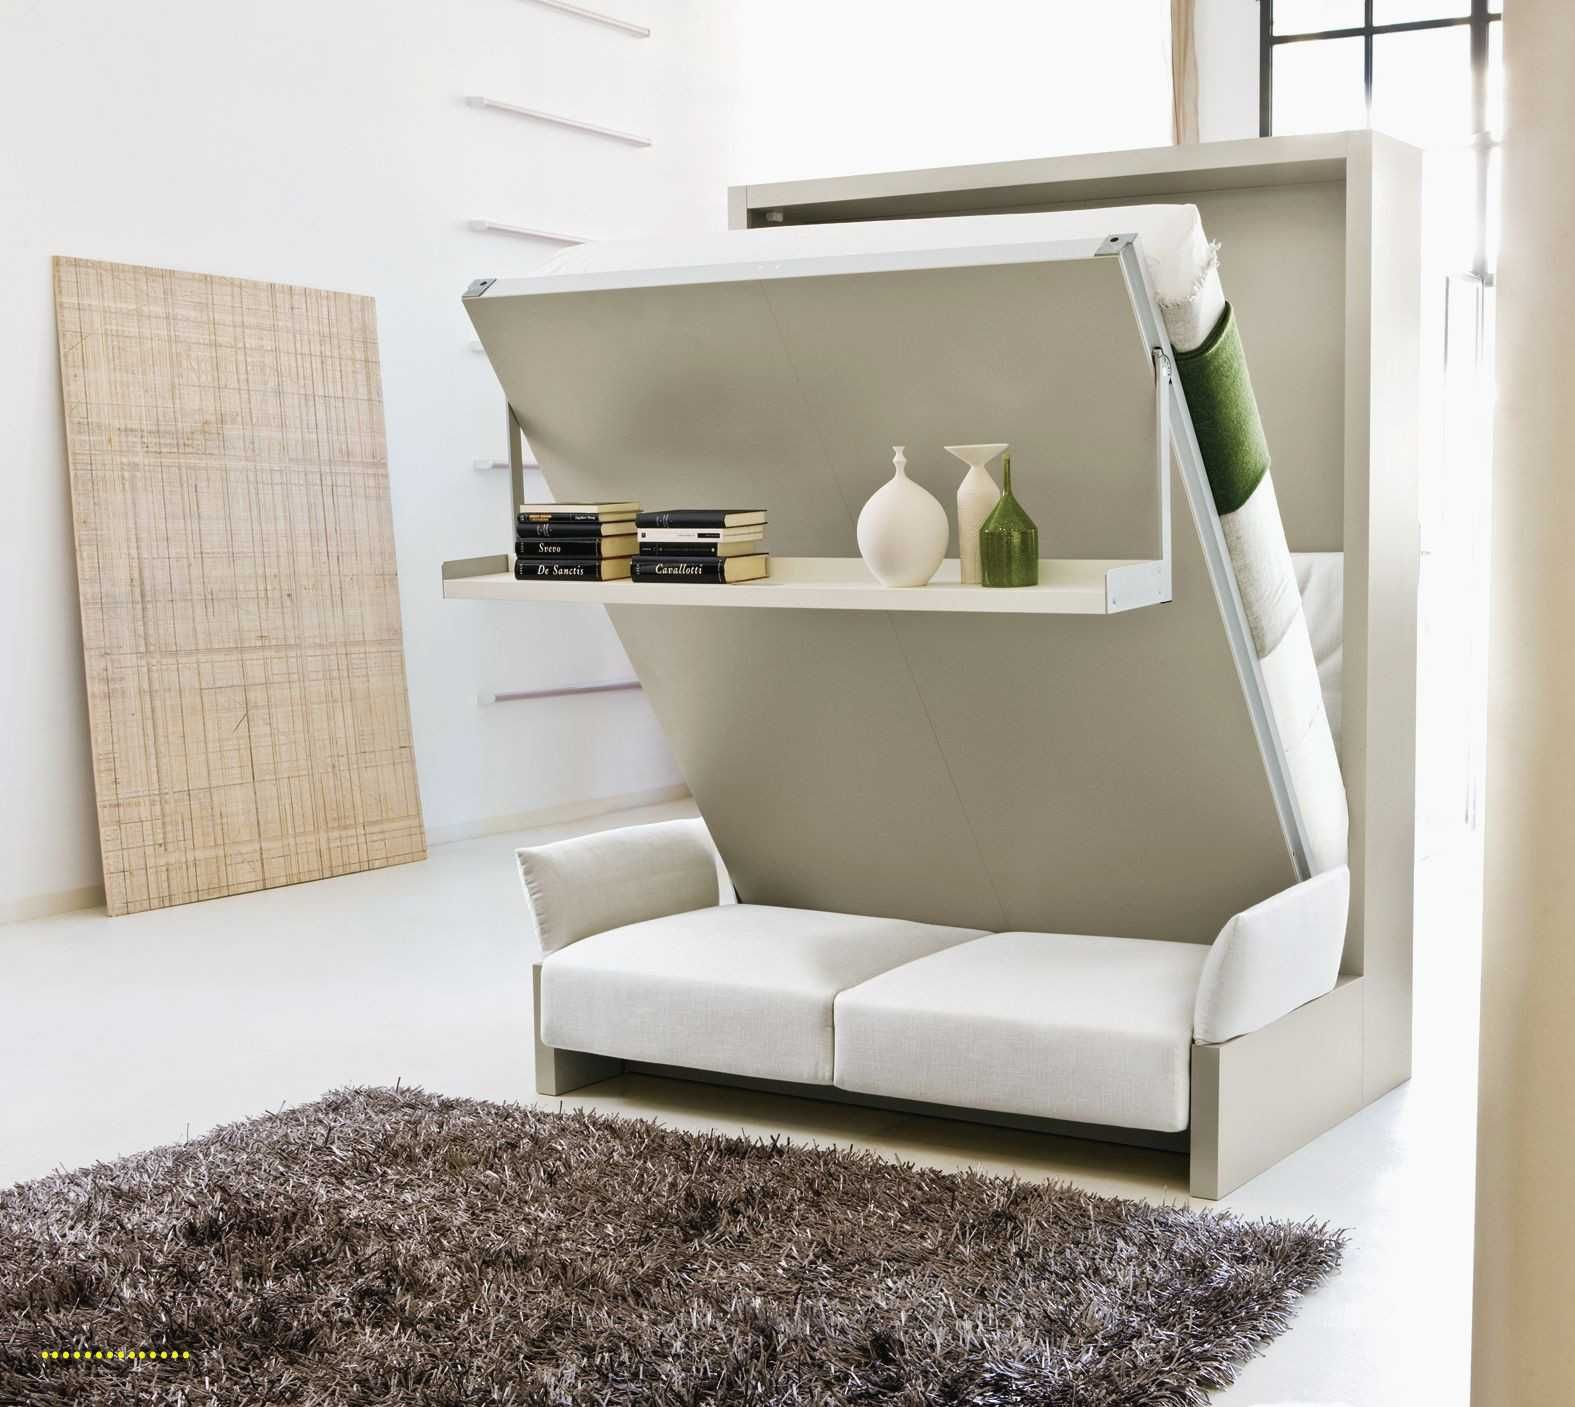 Marvelous Furniture Ito Sofa Wall Bed Price Uk Splendid Murphy Beds 9 Machost Co Dining Chair Design Ideas Machostcouk